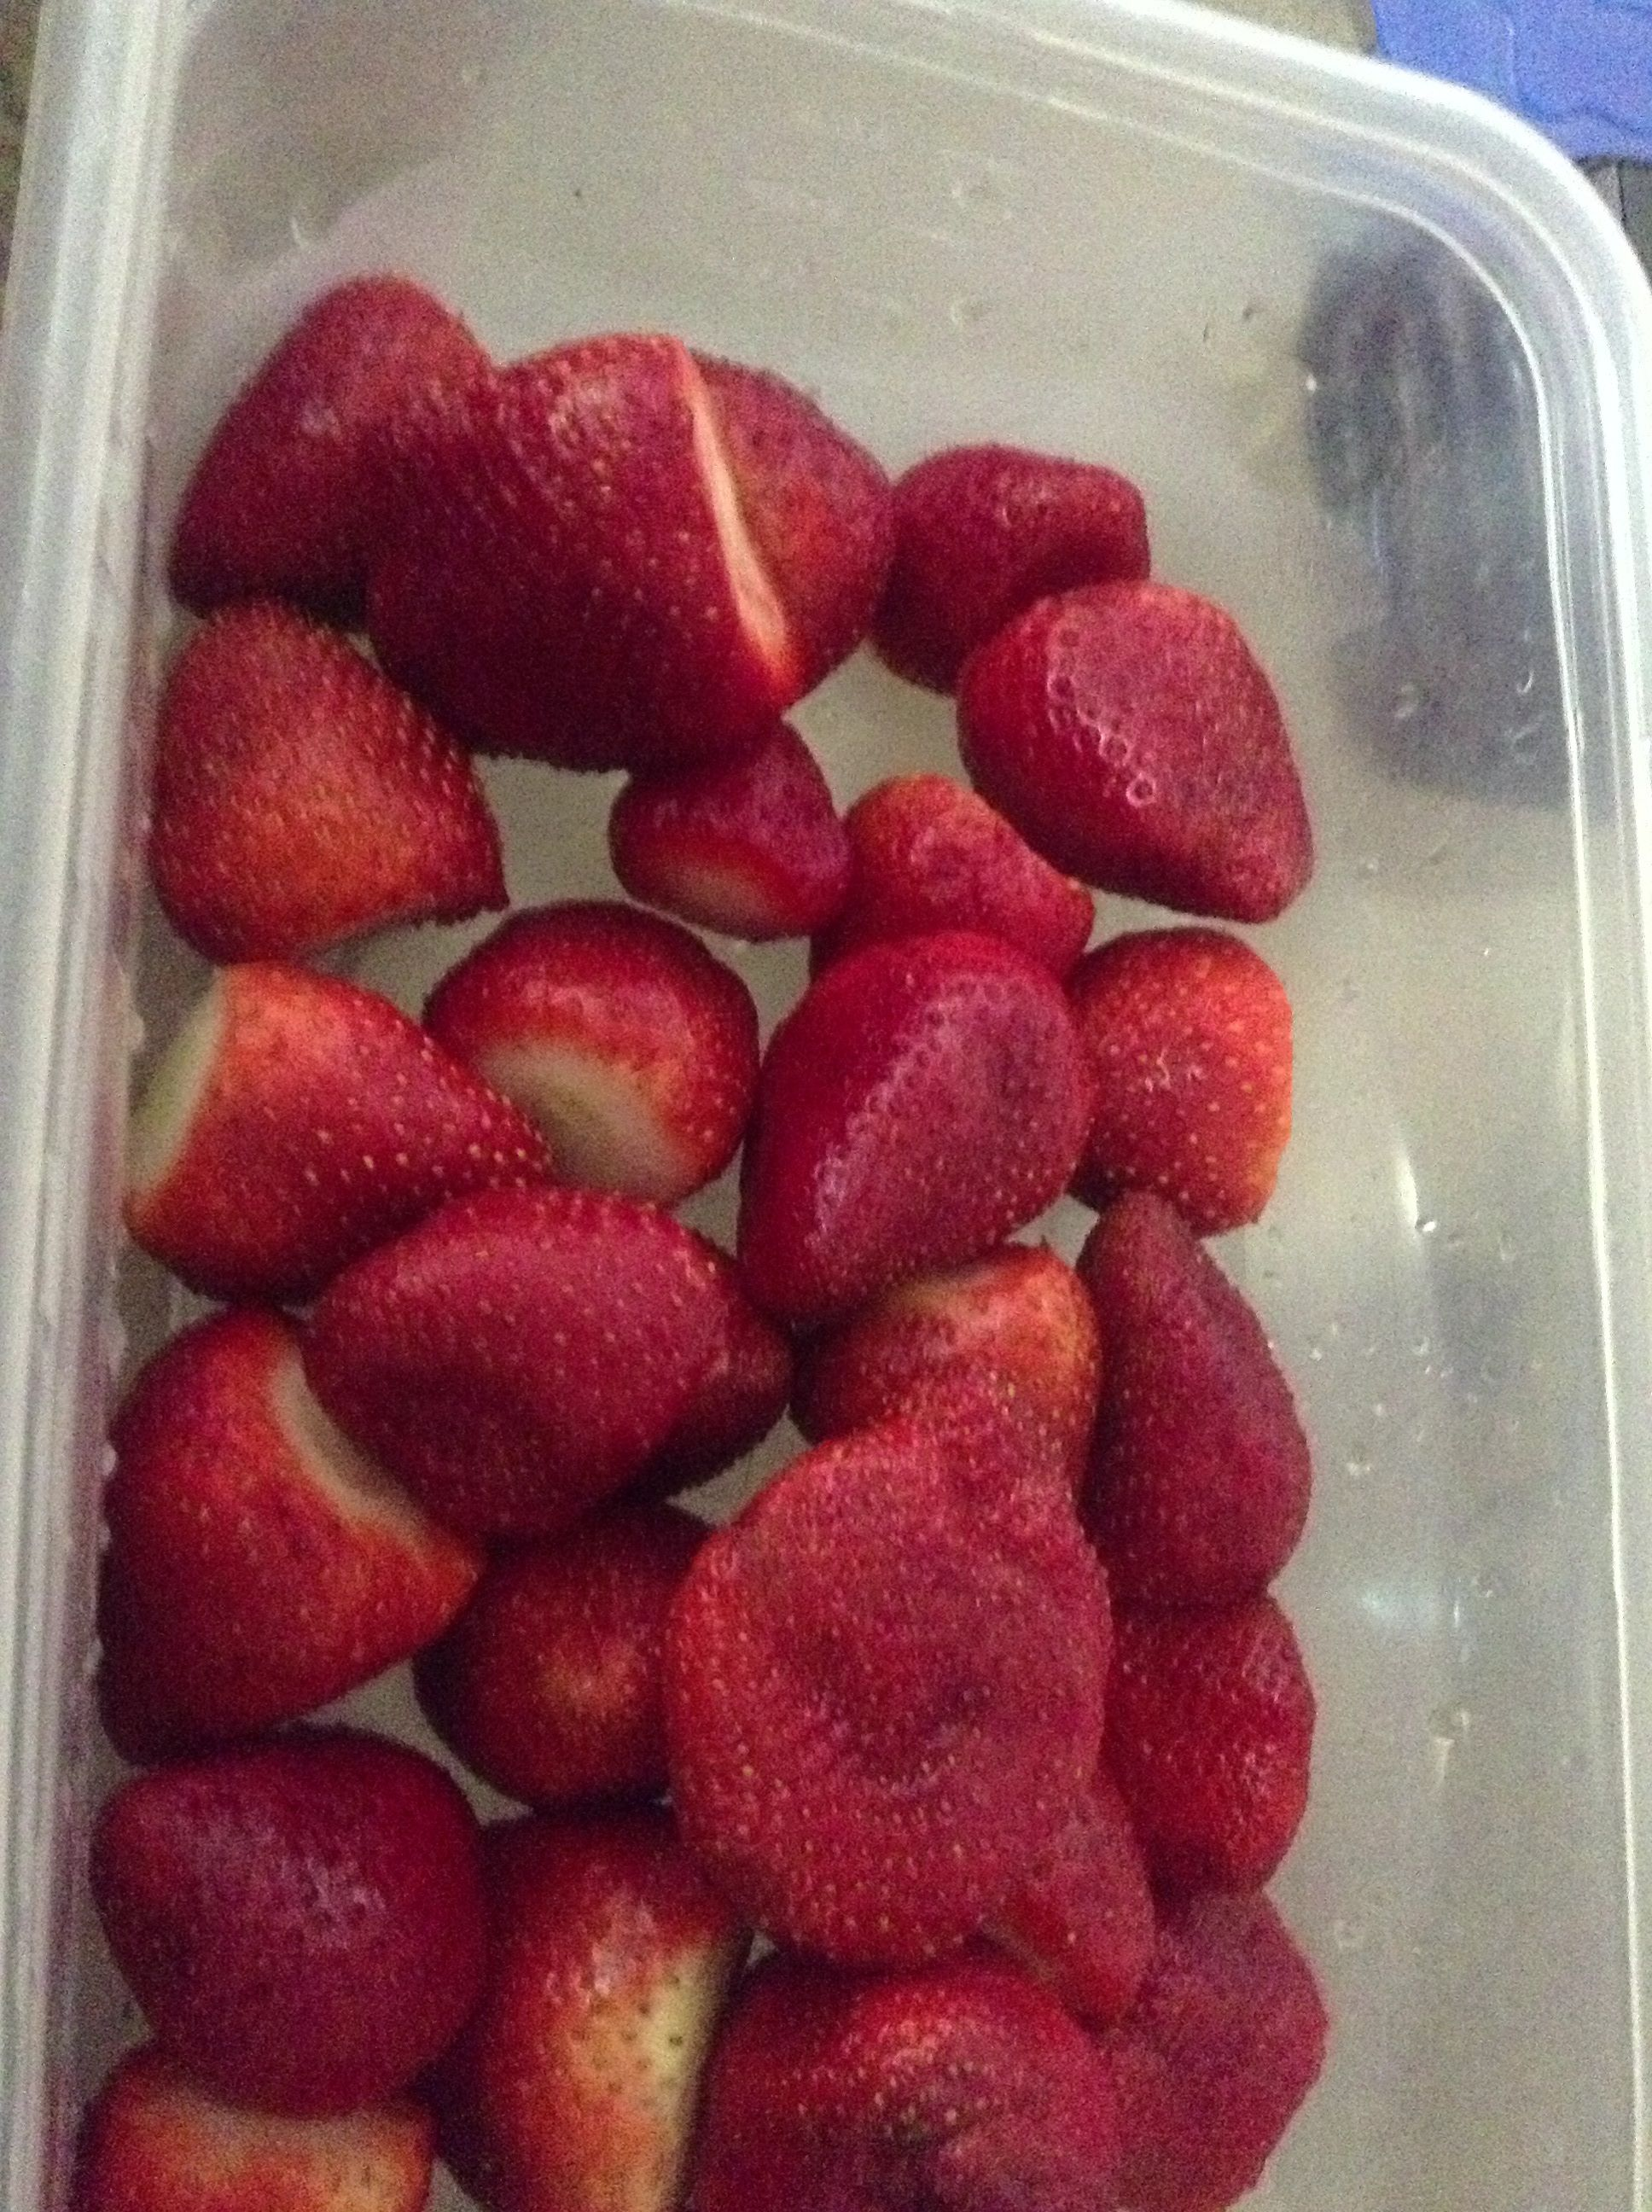 Fresh cut and washed strawberries from fresh and easy!